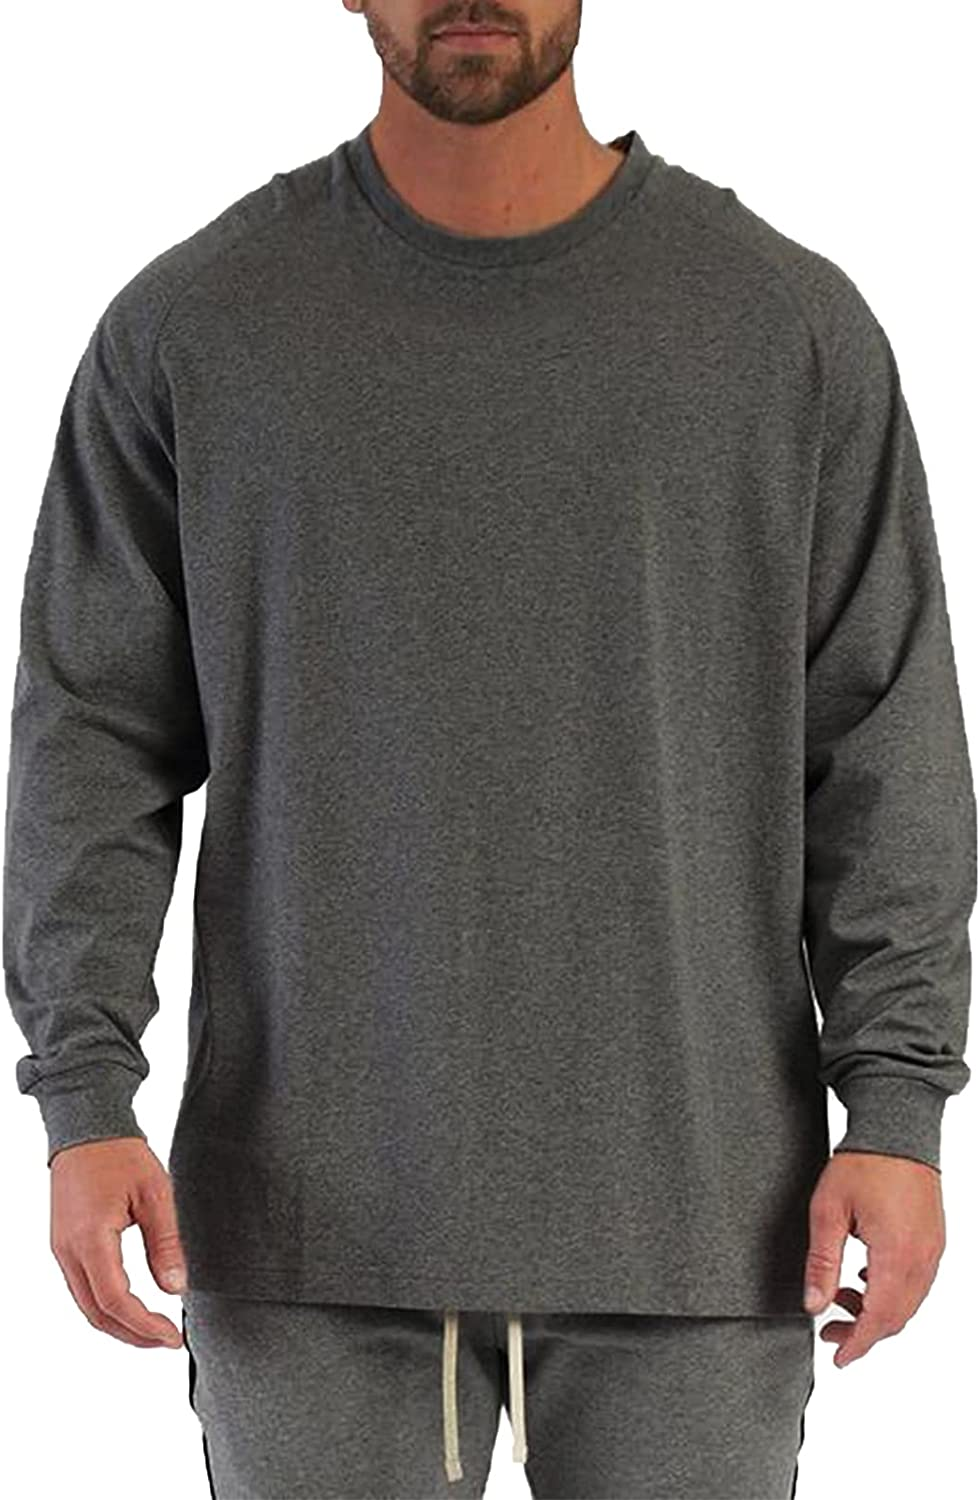 Men's Long Sleeve T-Shirt Classic Fit Tee Shirt Crew Neck Casual Athletic Cotton Tee